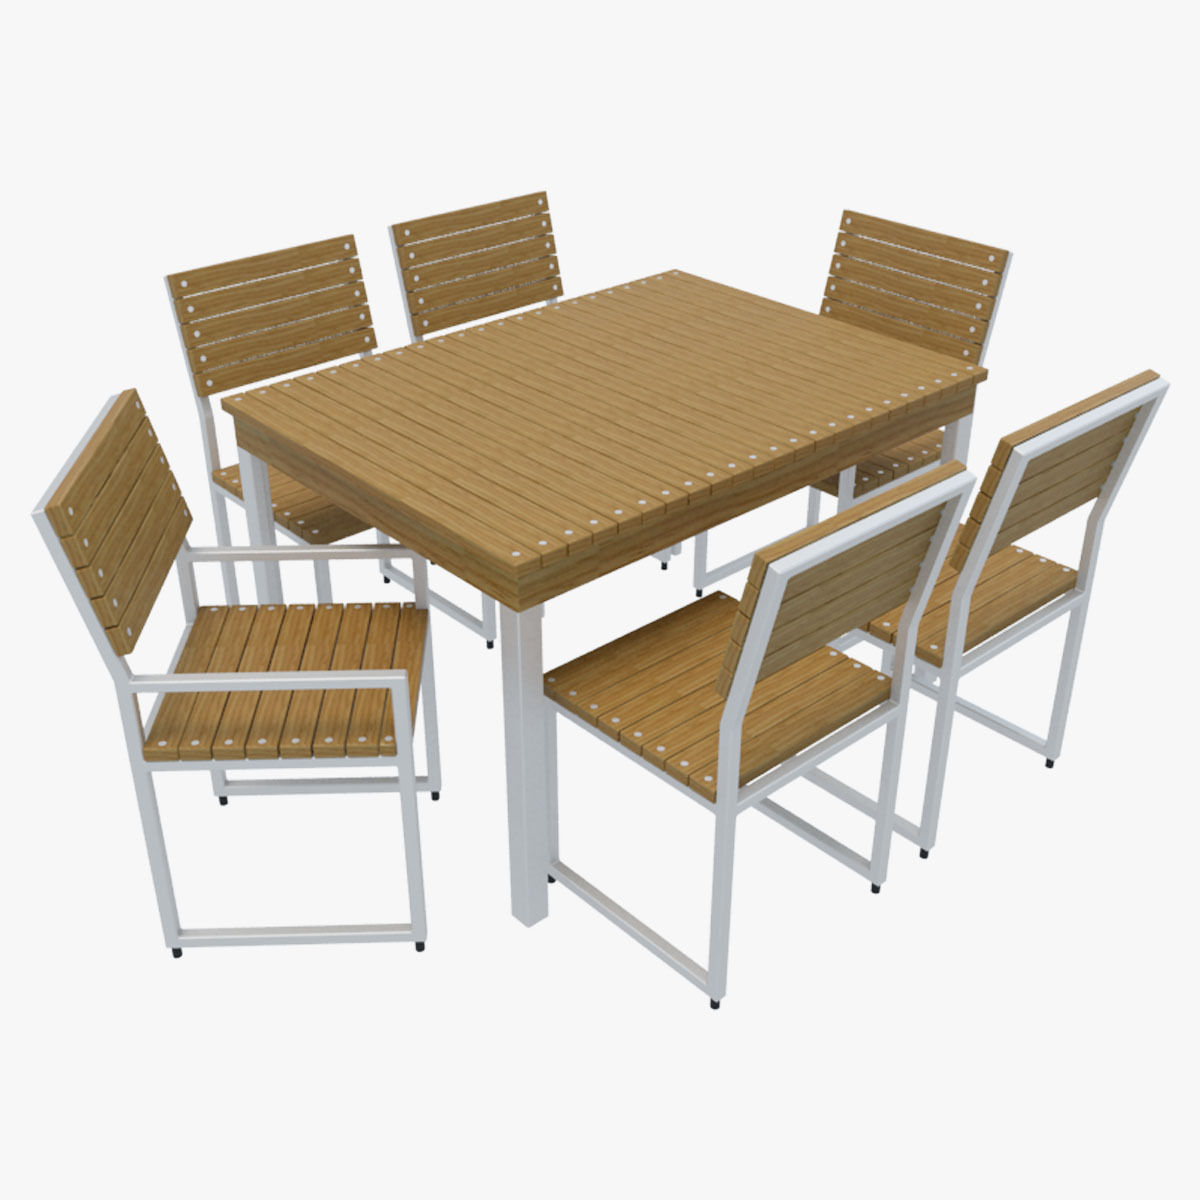 Outdoor Furniture 2 Model